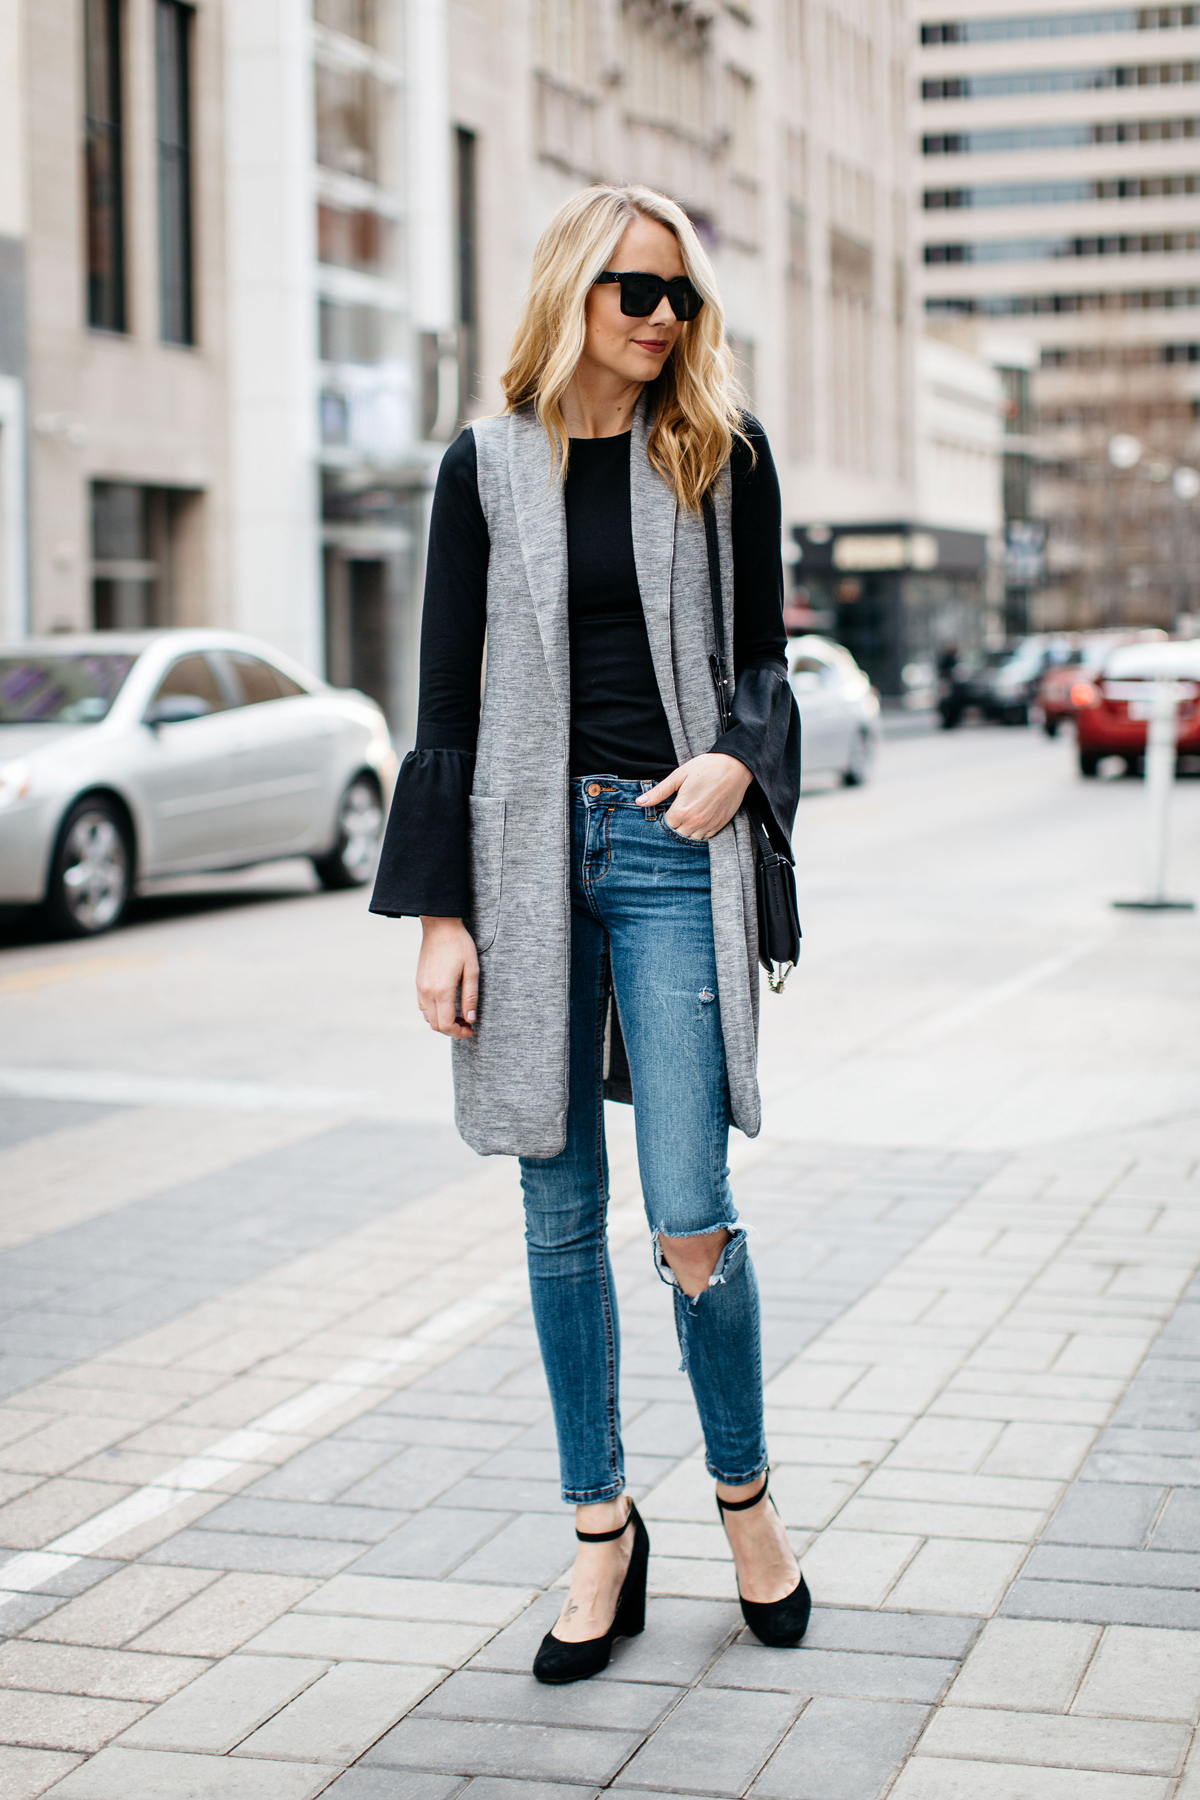 HOW TO WEAR A LONG VEST THIS SEASON | Fashion Jackson